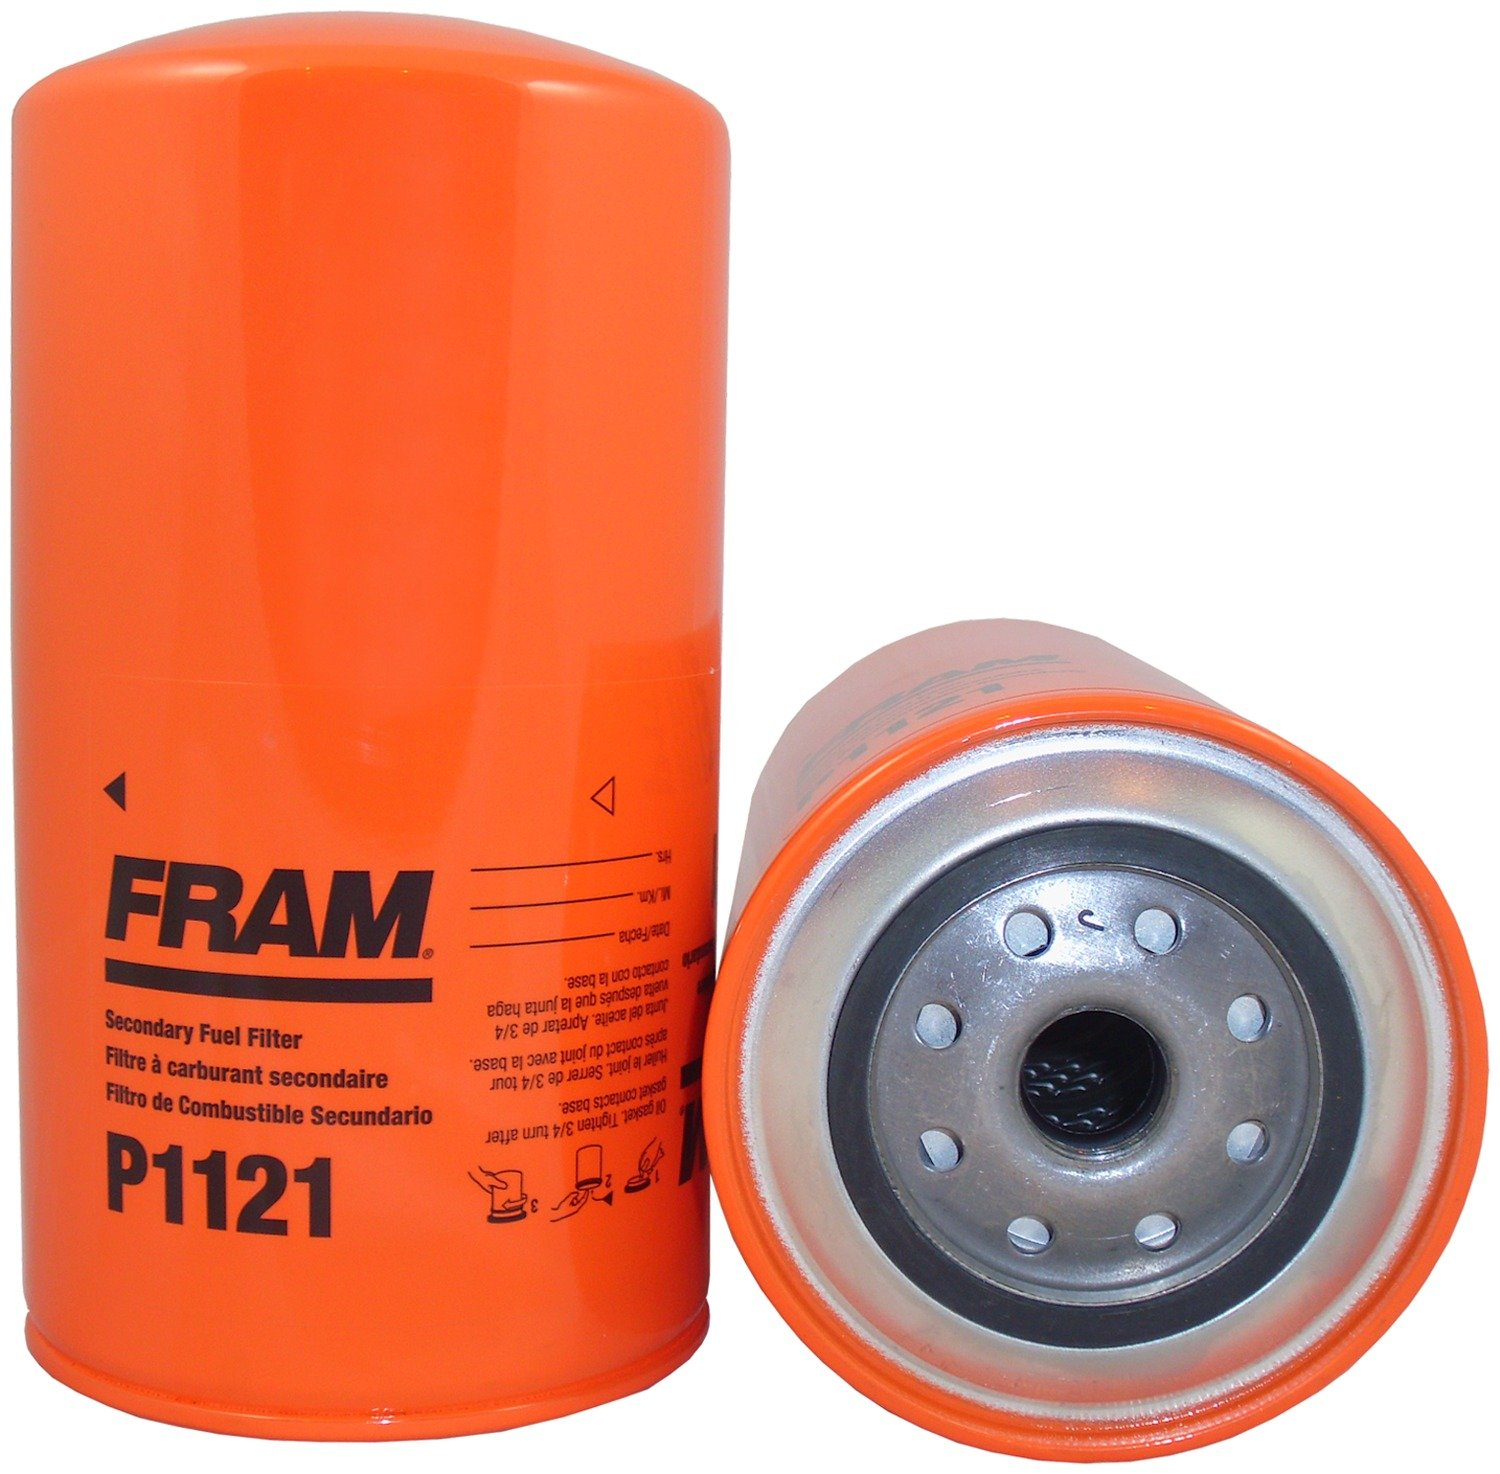 Fram Fuel Filter Bases Wiring Library Mercedes Ml320 Location Amazoncom P1121 Secondary Spin On Automotive